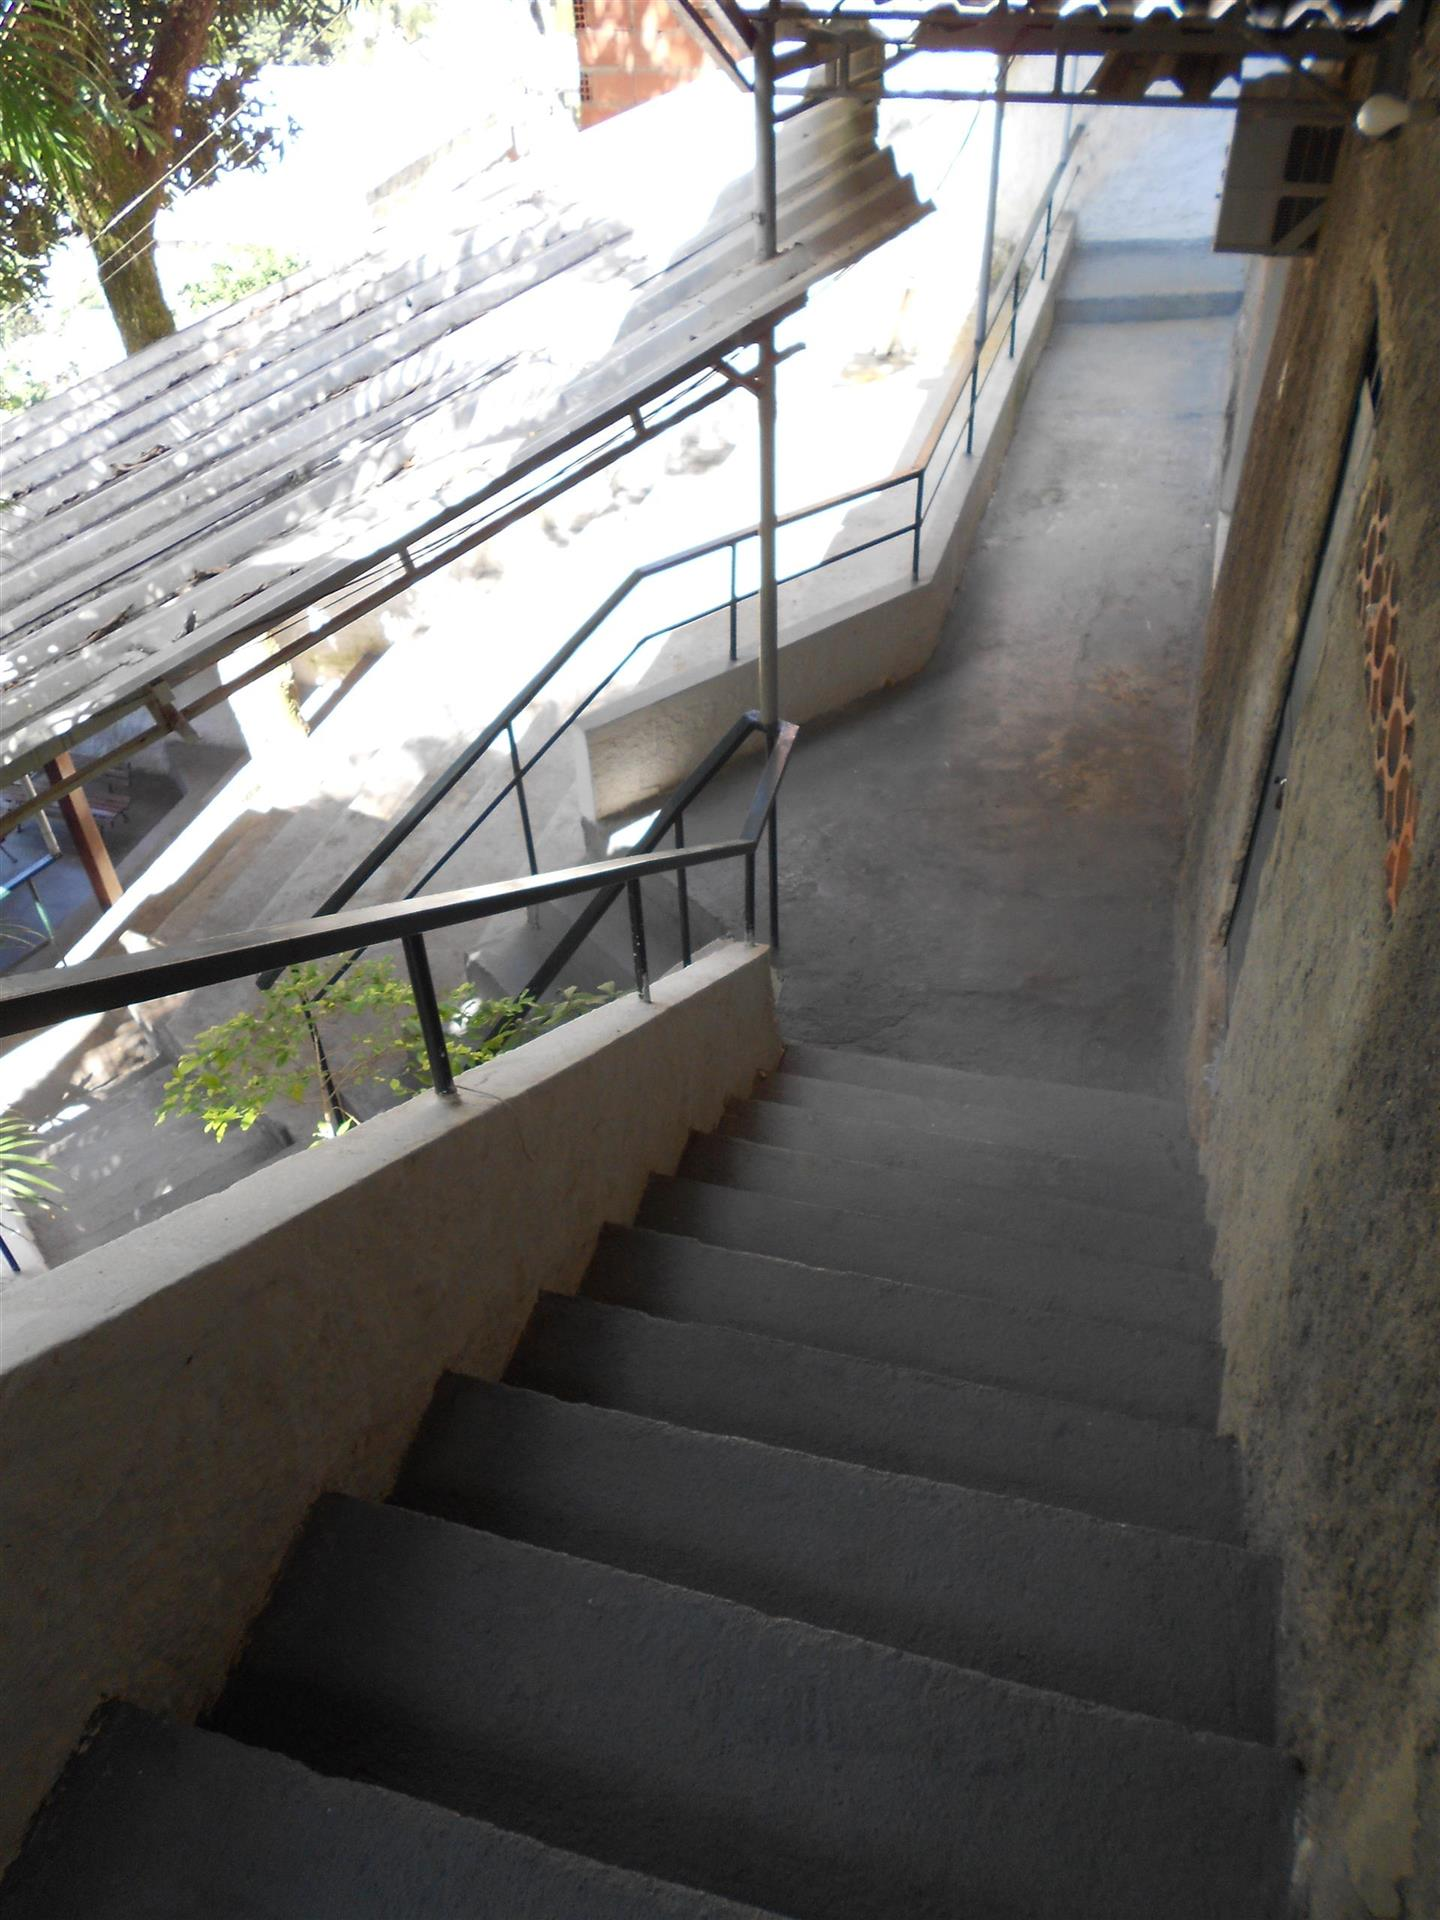 Stairs down to more rooms